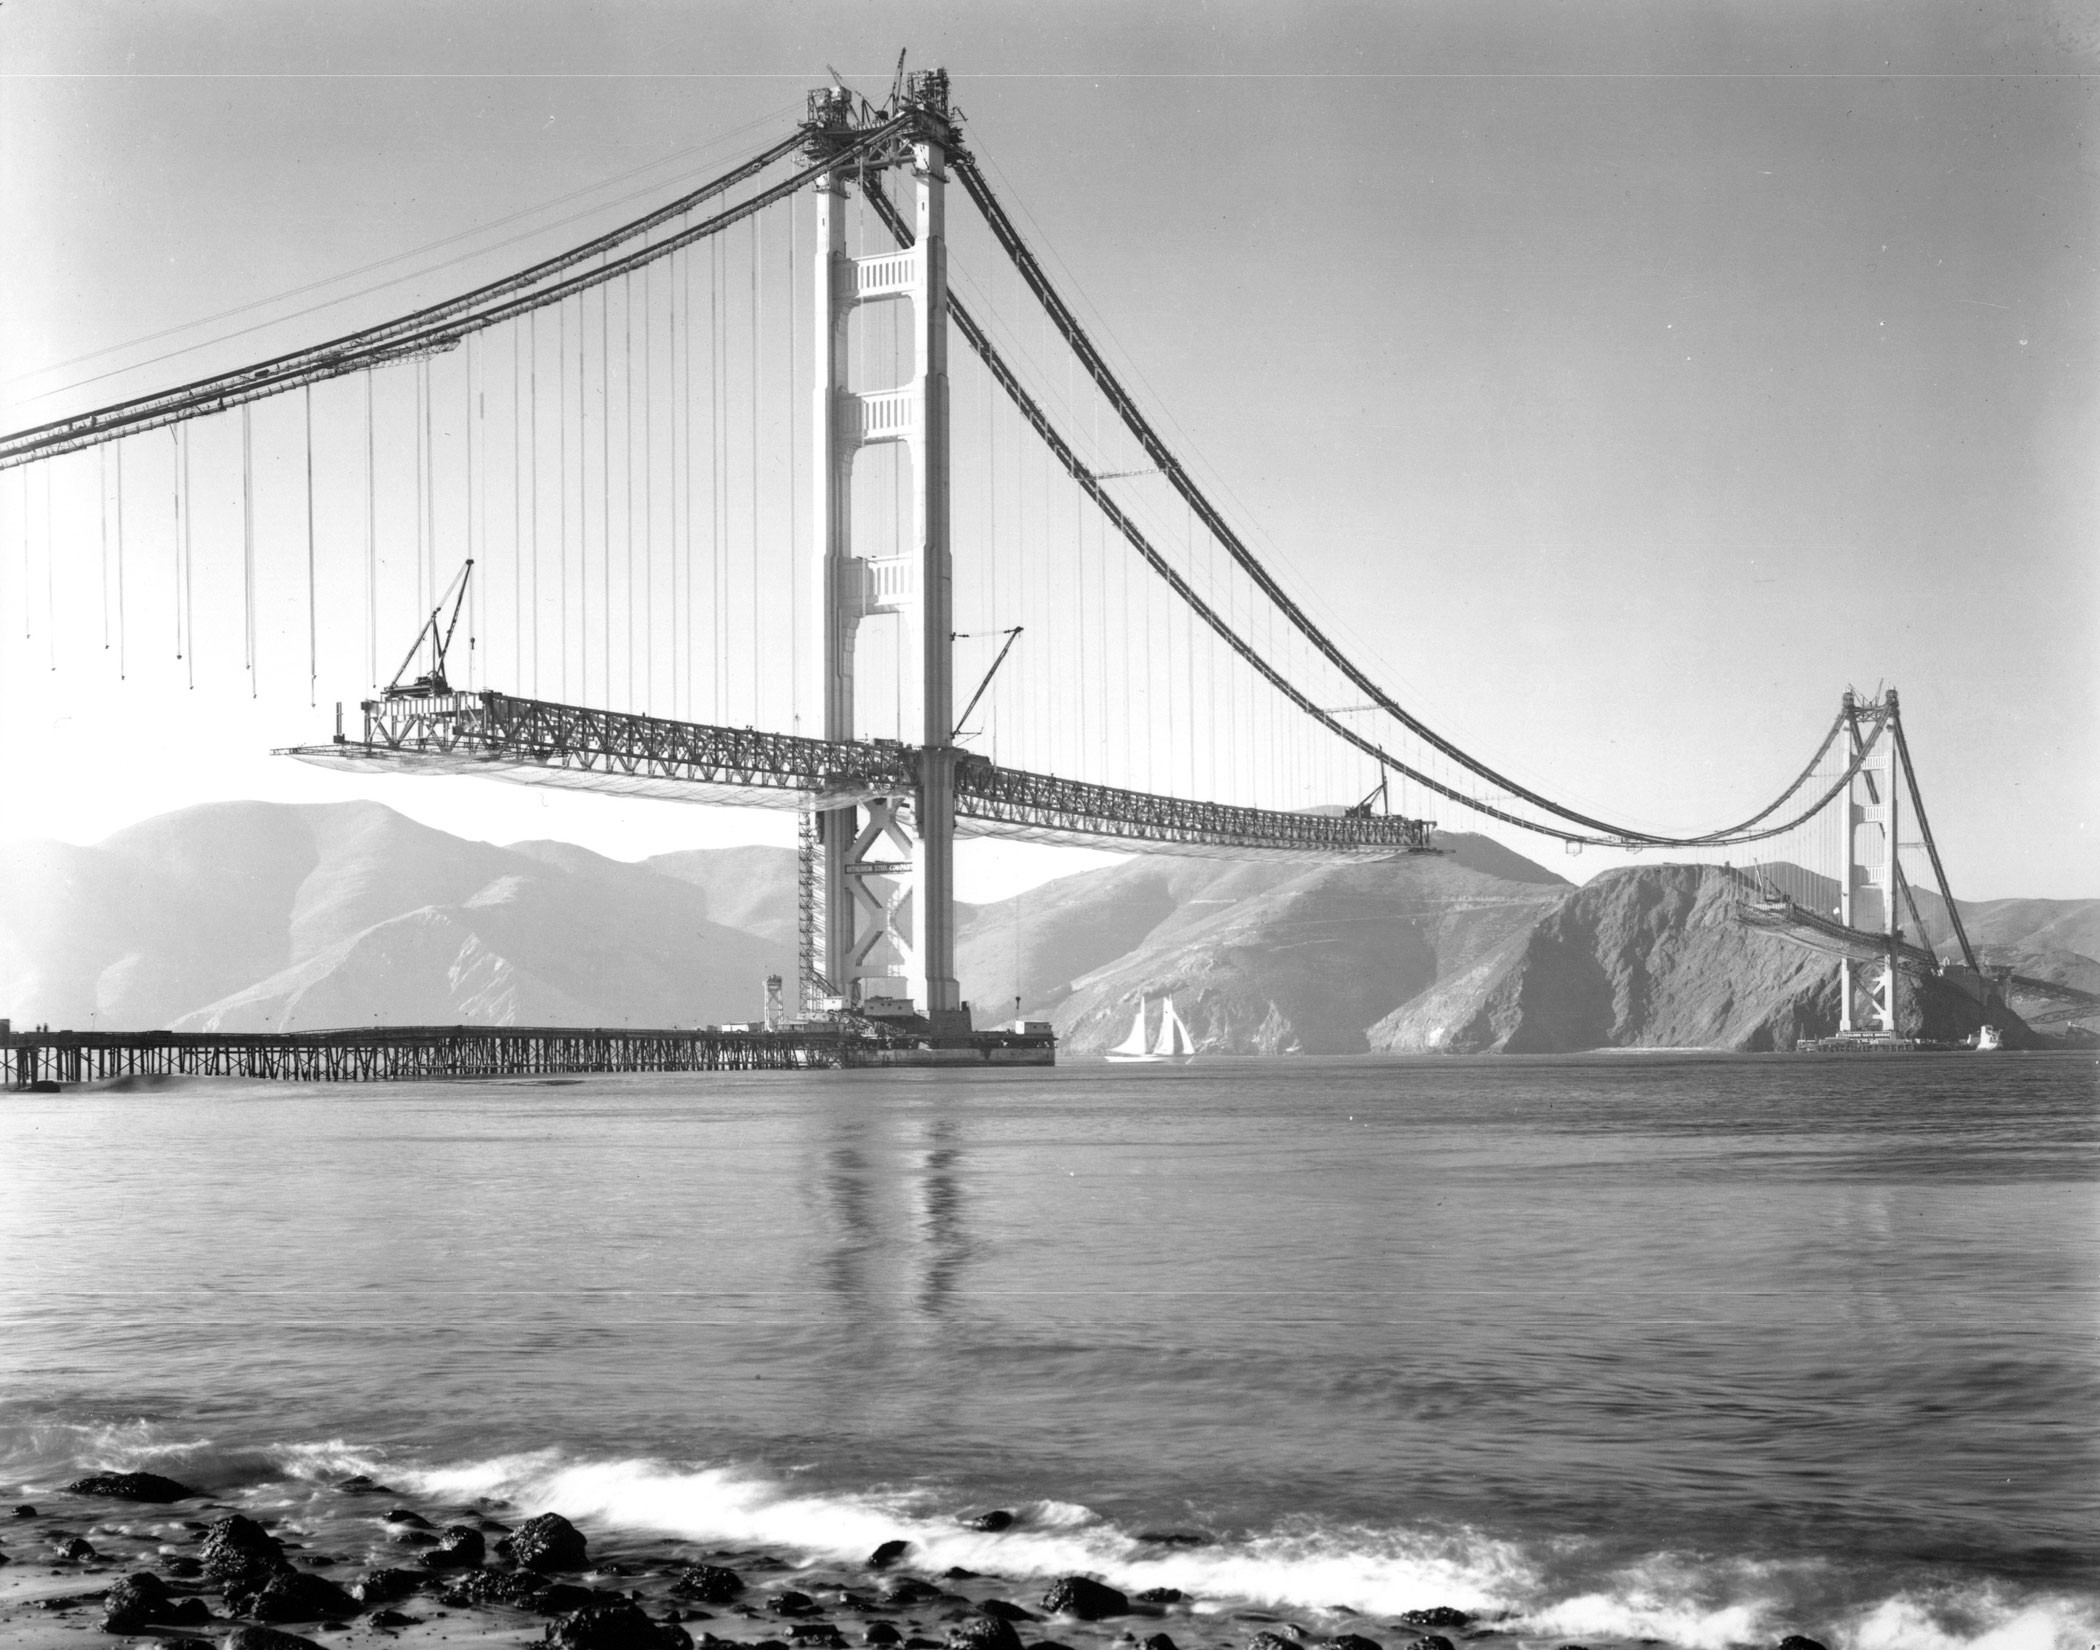 jumping from bridges the golden gate bridge under construction